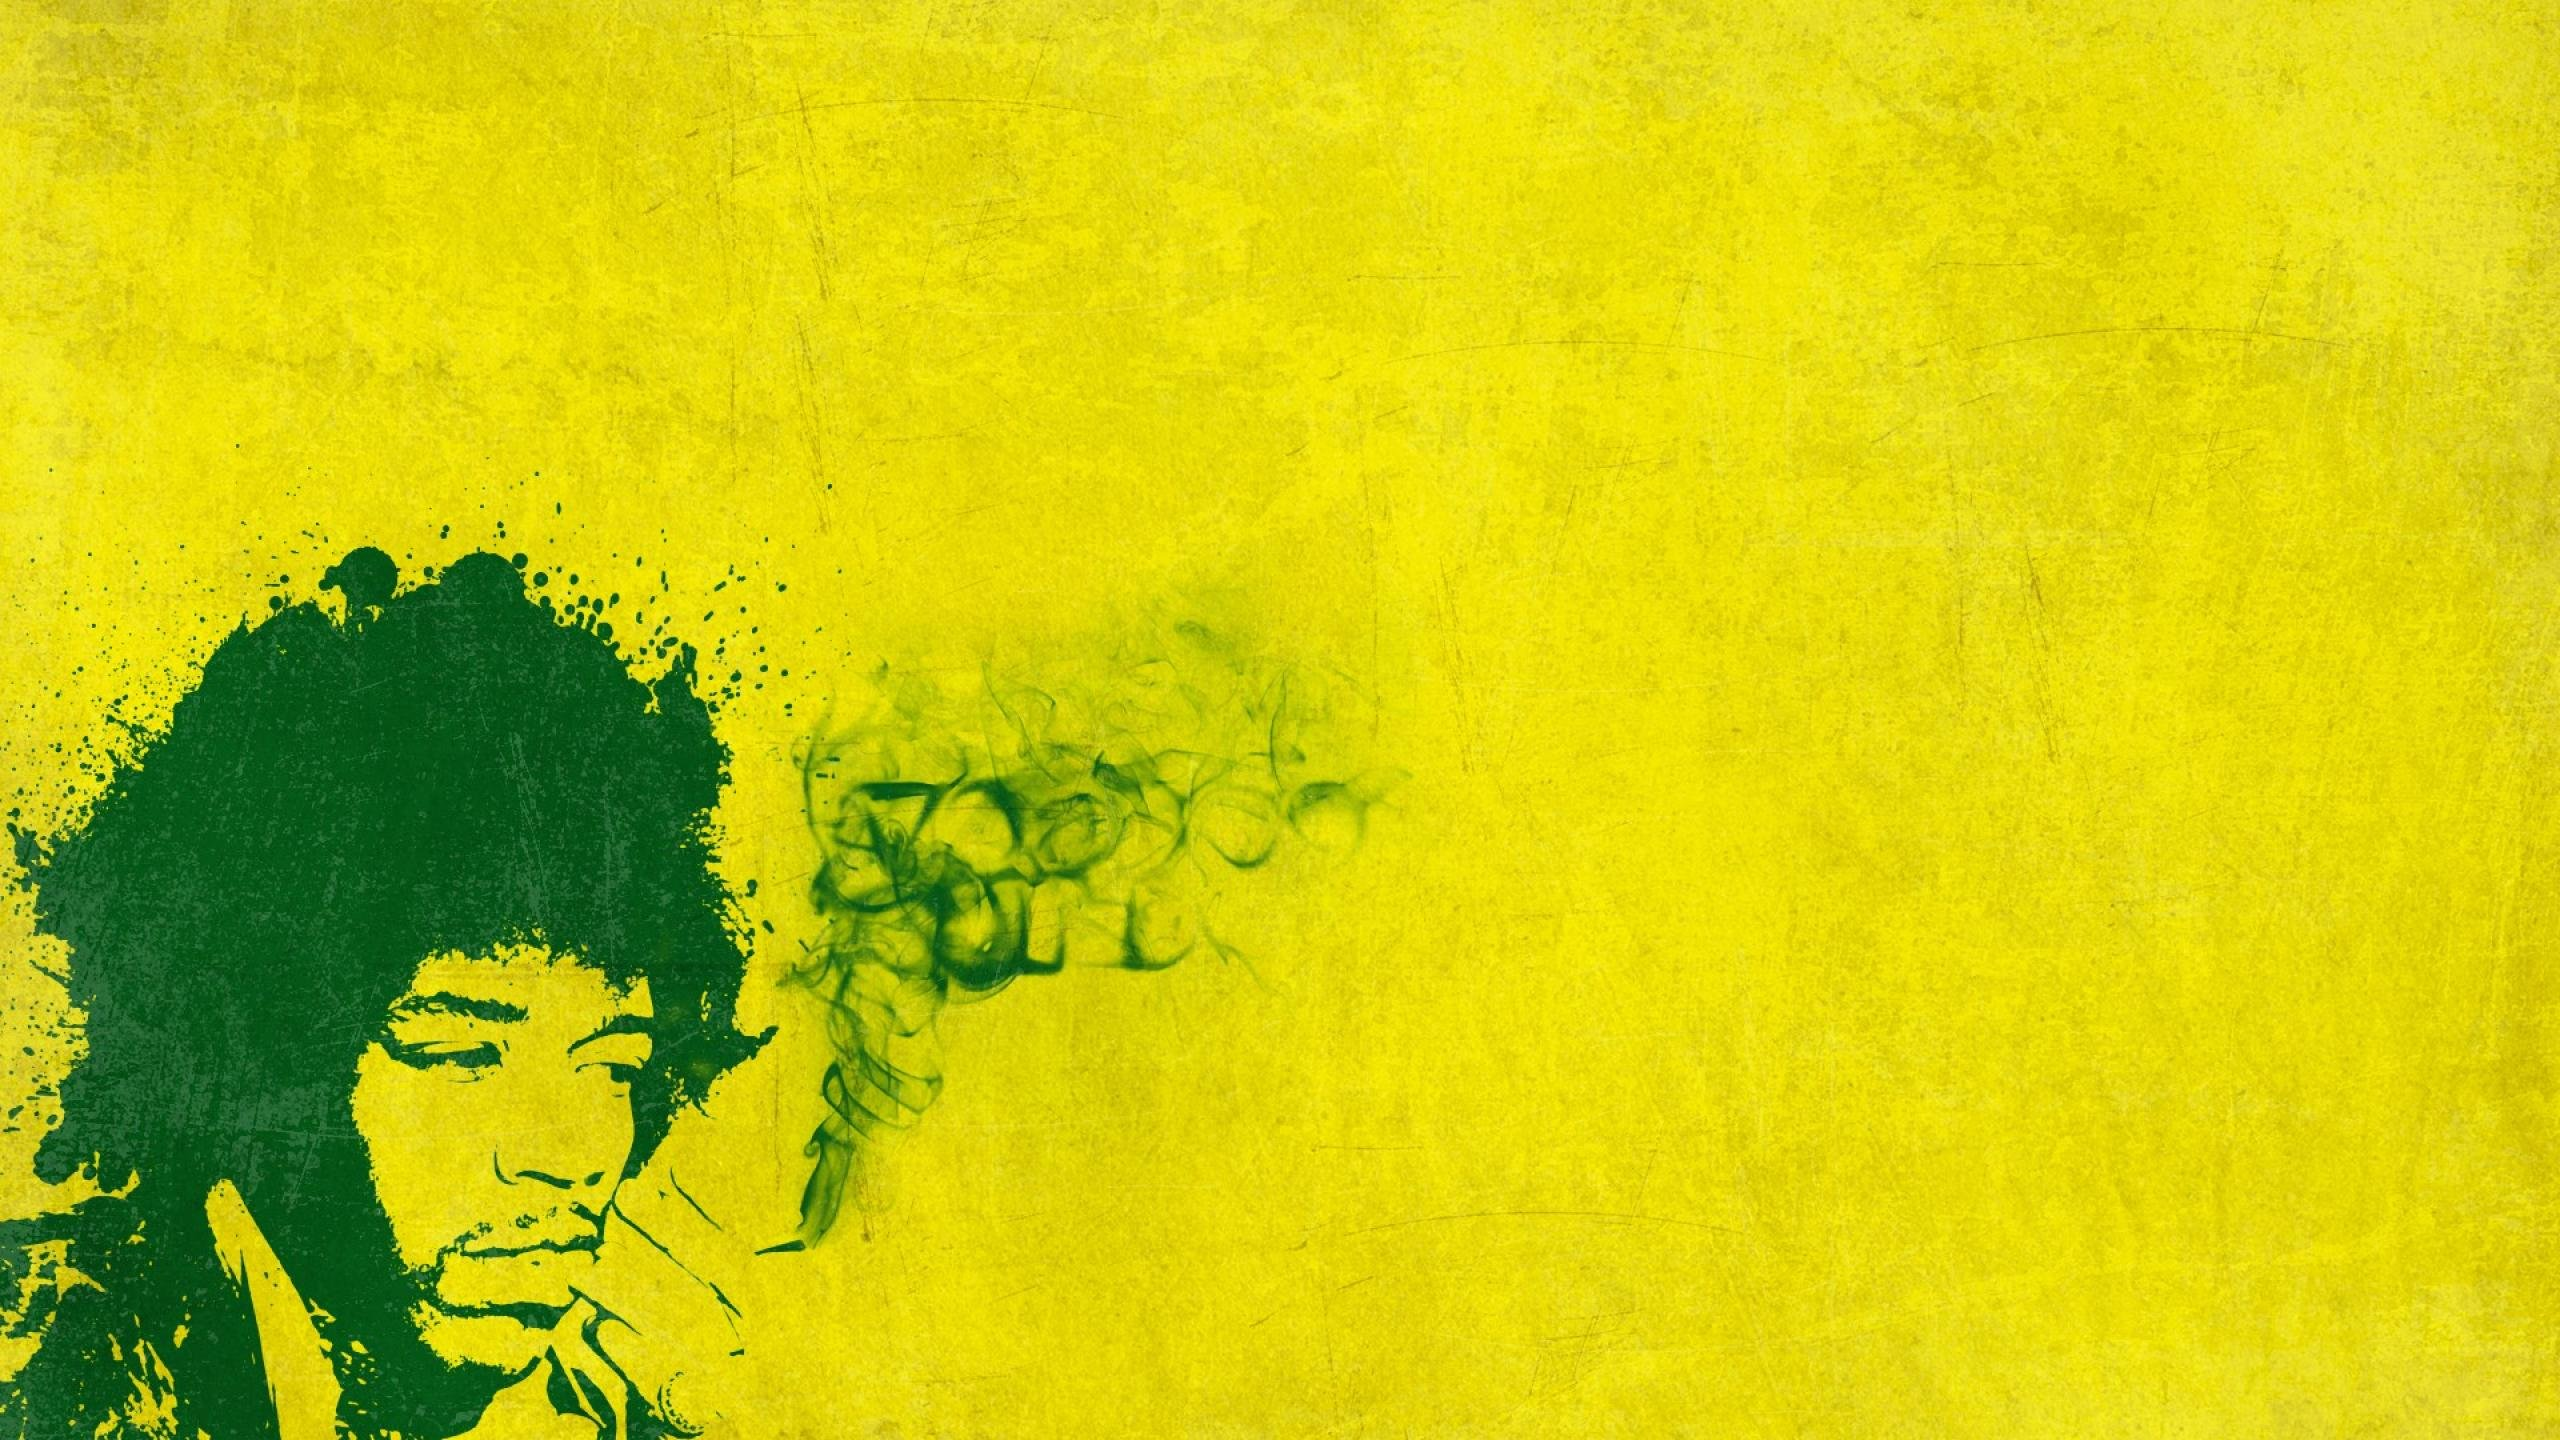 Jimi Hendrix Wallpapers Images Photos Pictures Backgrounds 2560x1440